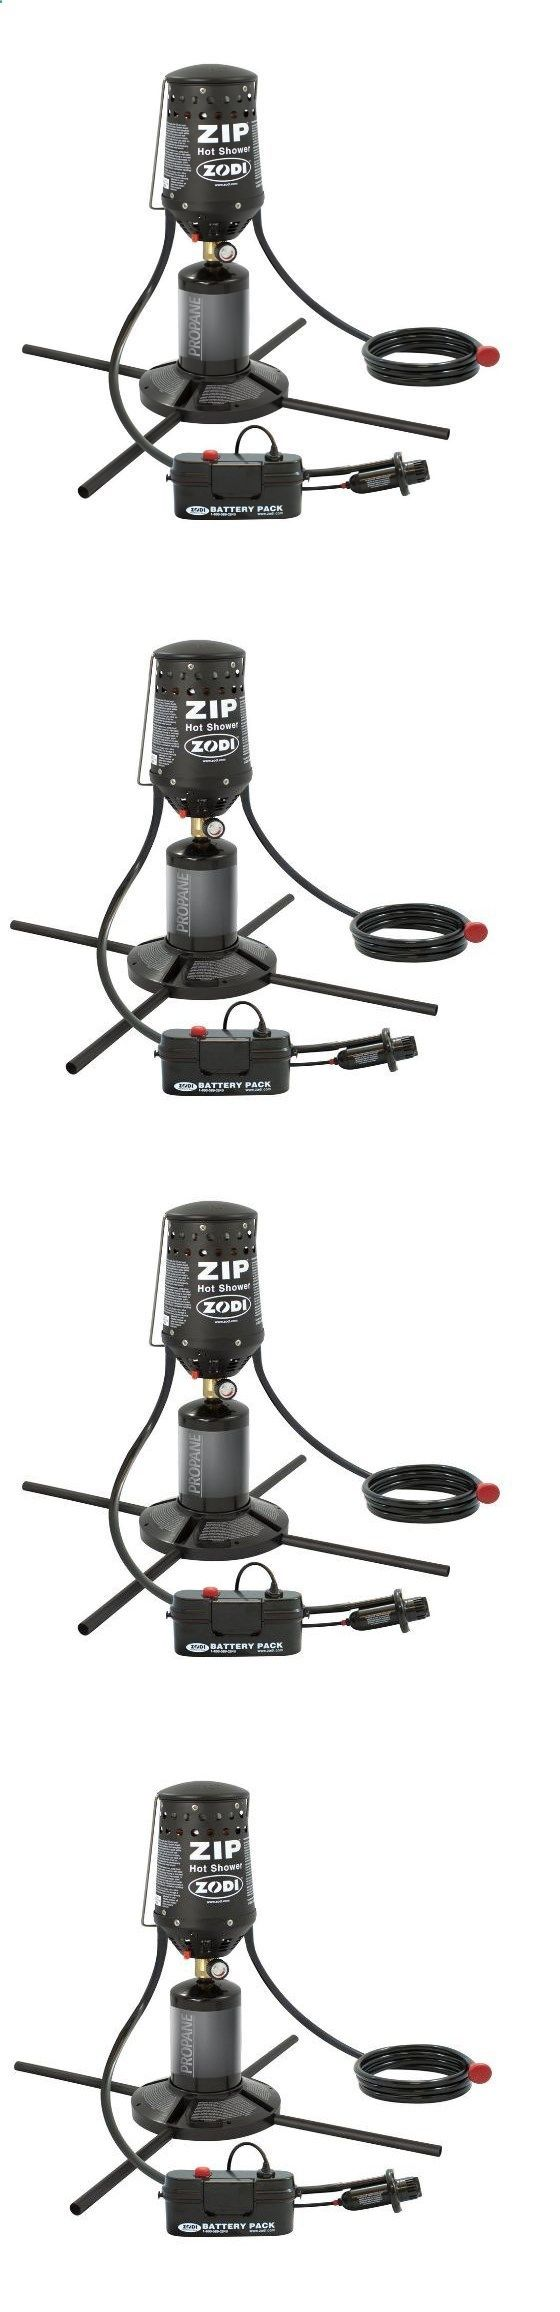 Hot Water Heater Accessories The 25 Best Portable Propane Heater Ideas On Pinterest Portable